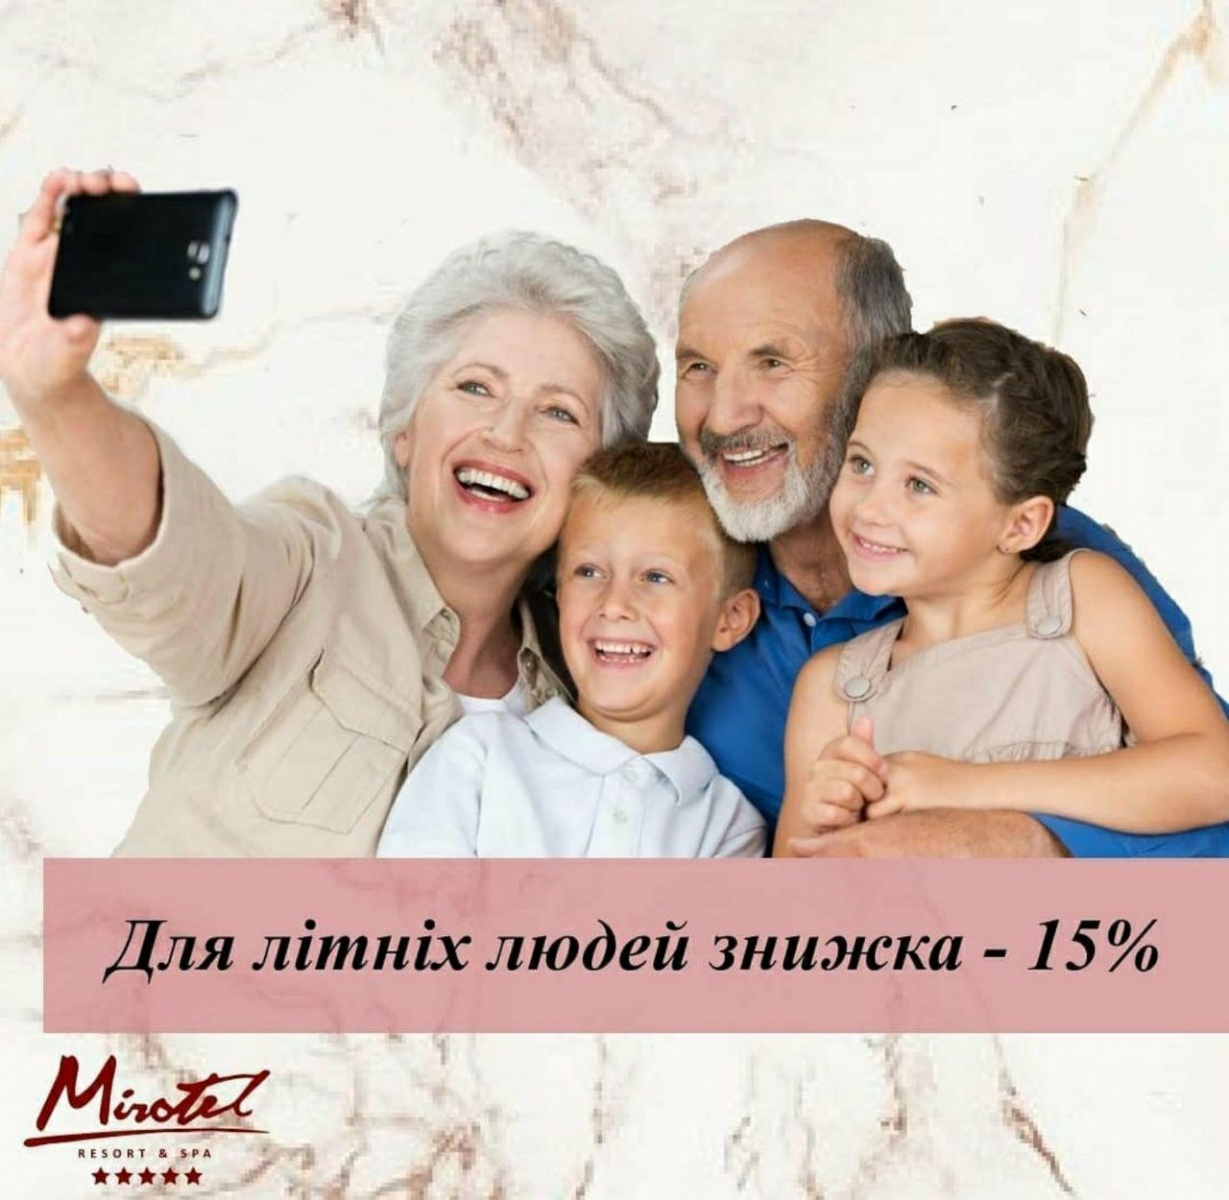 MIROTEL Resort & Spa акция -15%